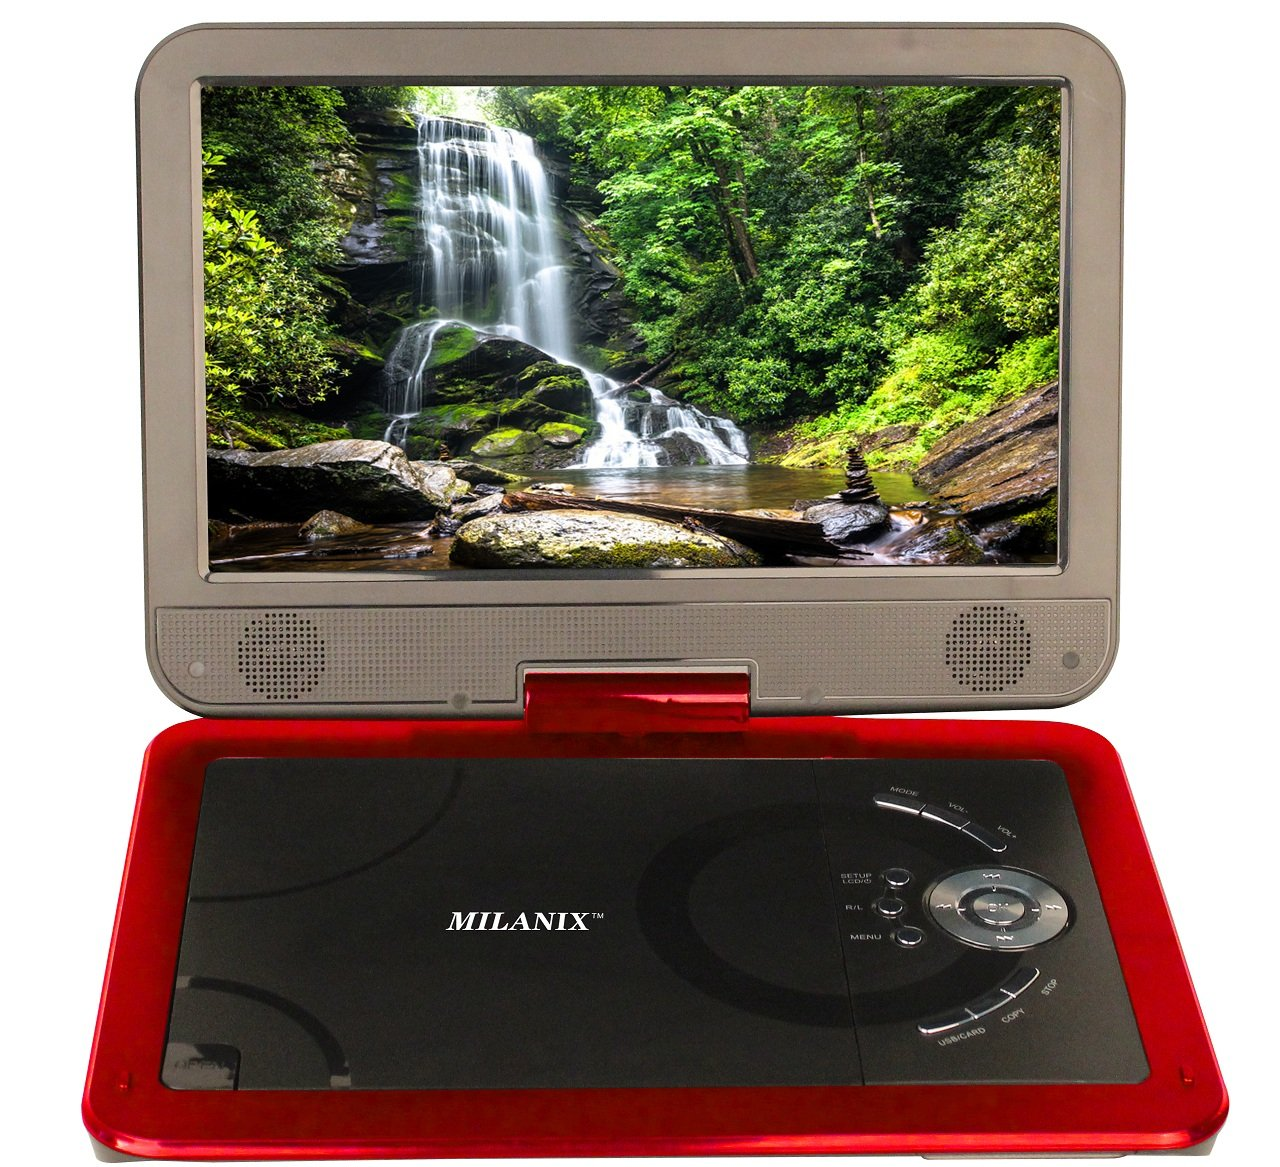 """Milanix 10.5"""" Portable DVD Player with Built-in Rechargeable Battery, CD Player, Swivel Screen, USB Port, and SD Card Slot - Red"""